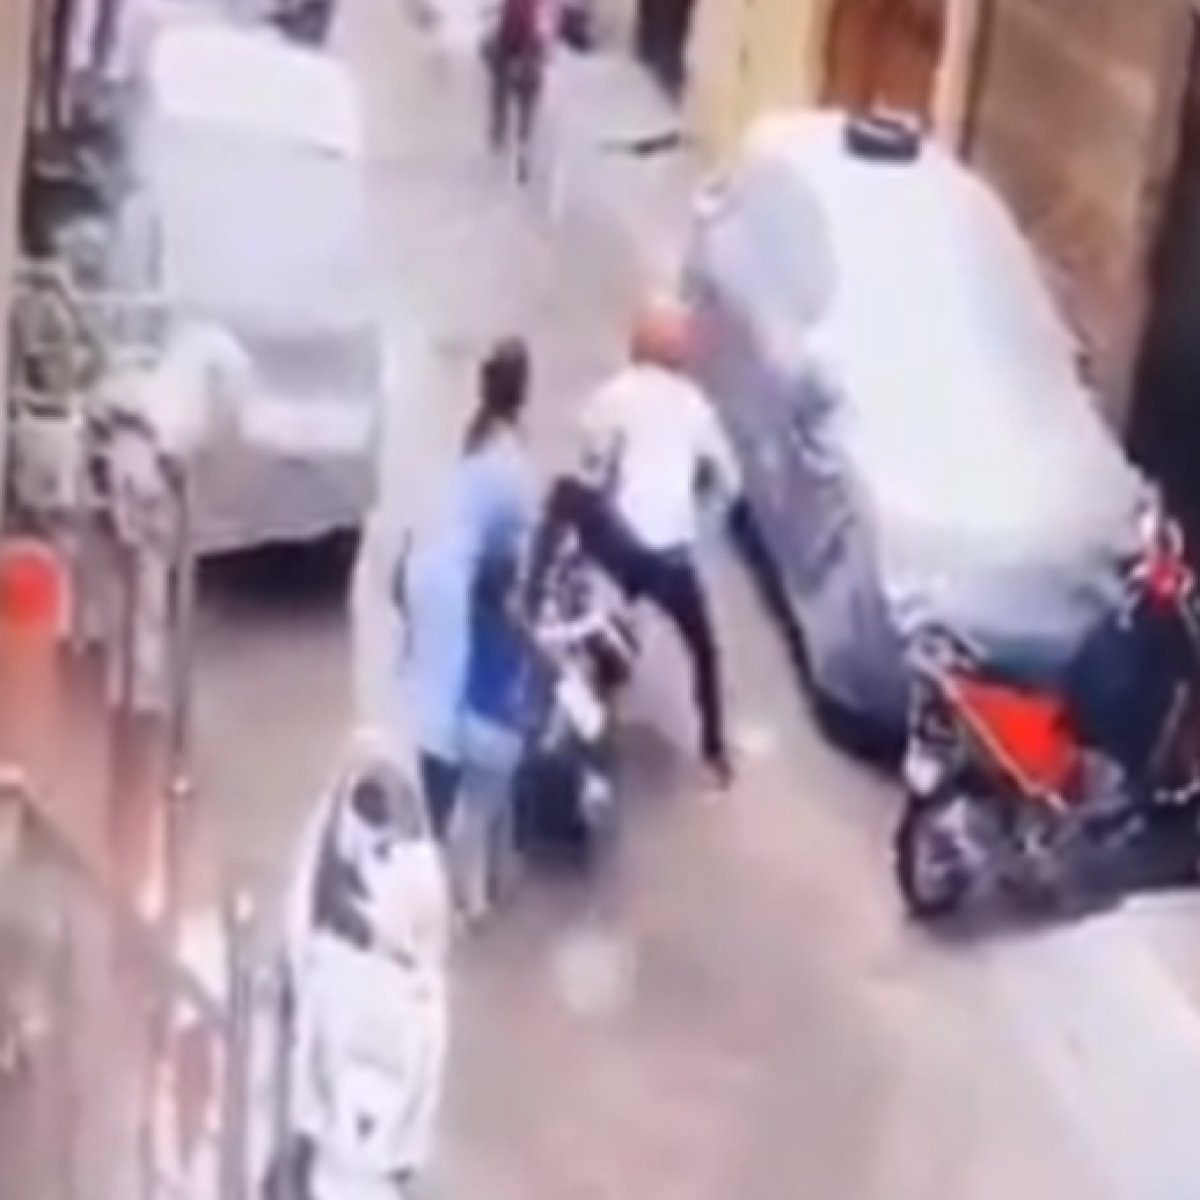 Watch video: Delhi mother fights off kidnappers to save her 4-year-old